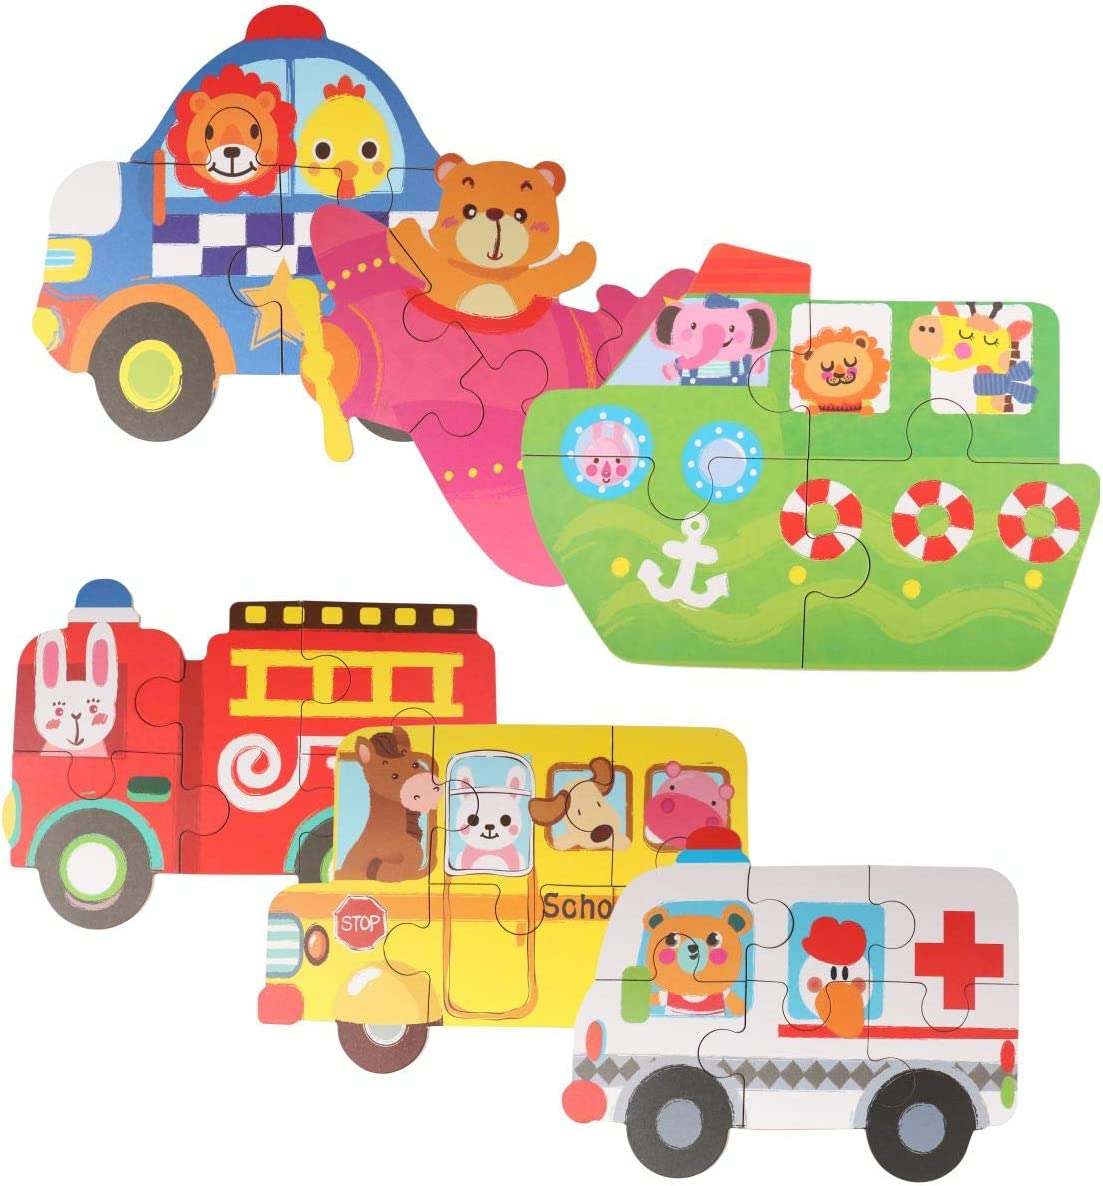 Animals-1 donado 6 in 1 Jigsaw Puzzles Set Educational Toddler Wooden Puzzles with Iron Box for Toddlers 2+